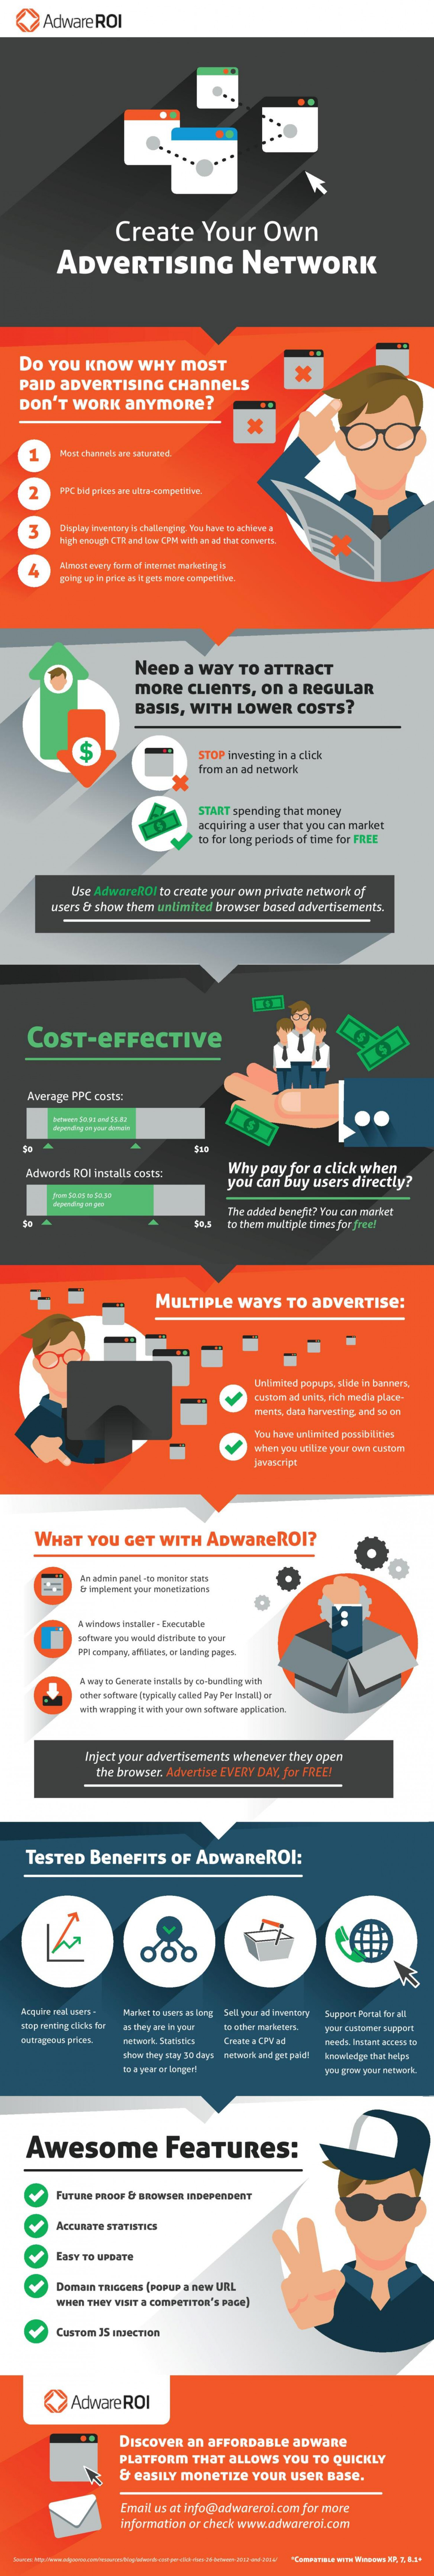 Create Your Own Advertising Network Infographic